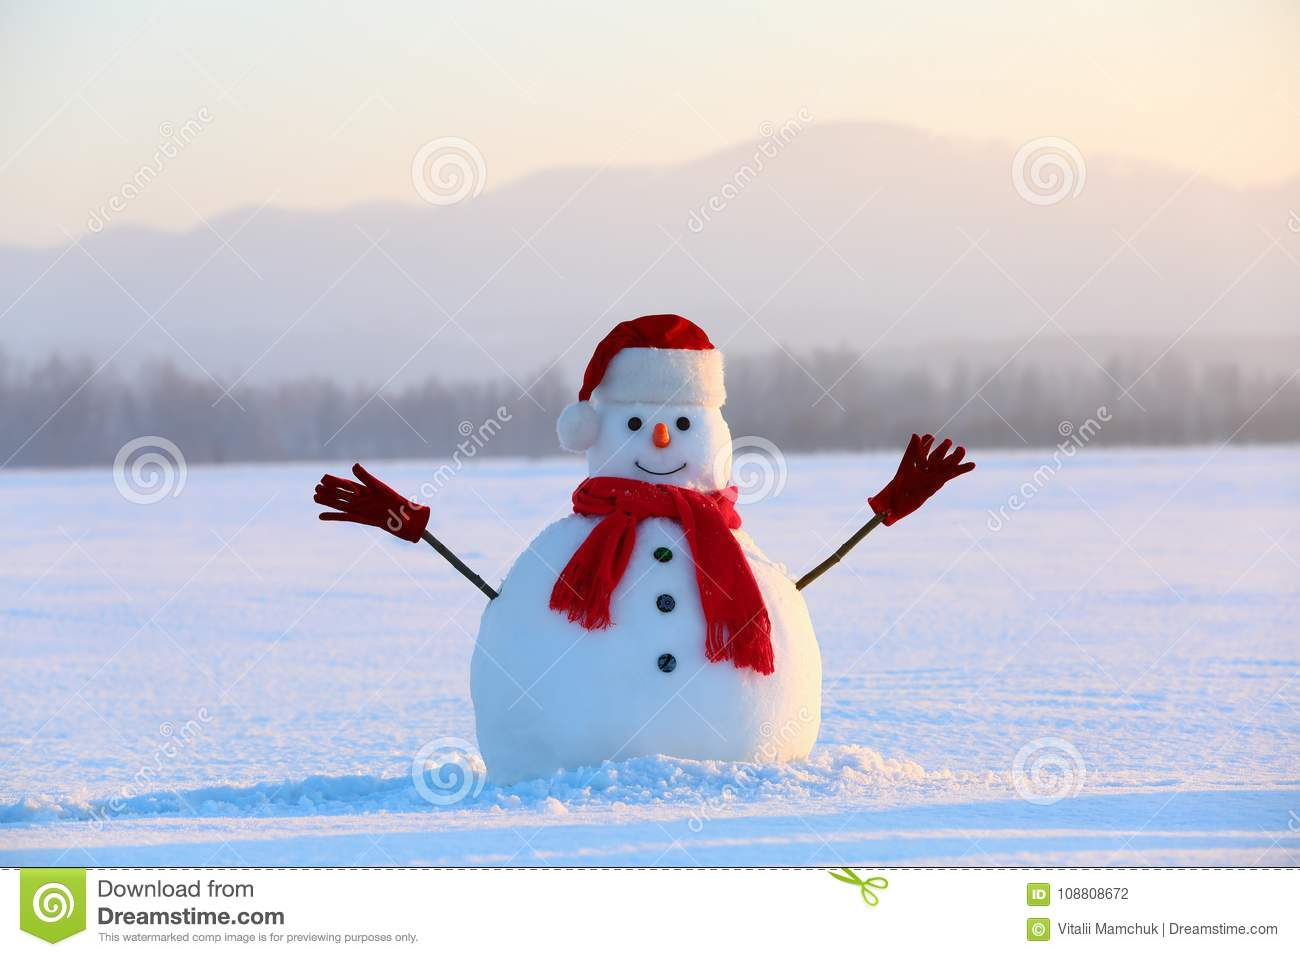 Snowman in red hat and scarf. Christmas scenery. High mountains at the background. Ground covered by snow.